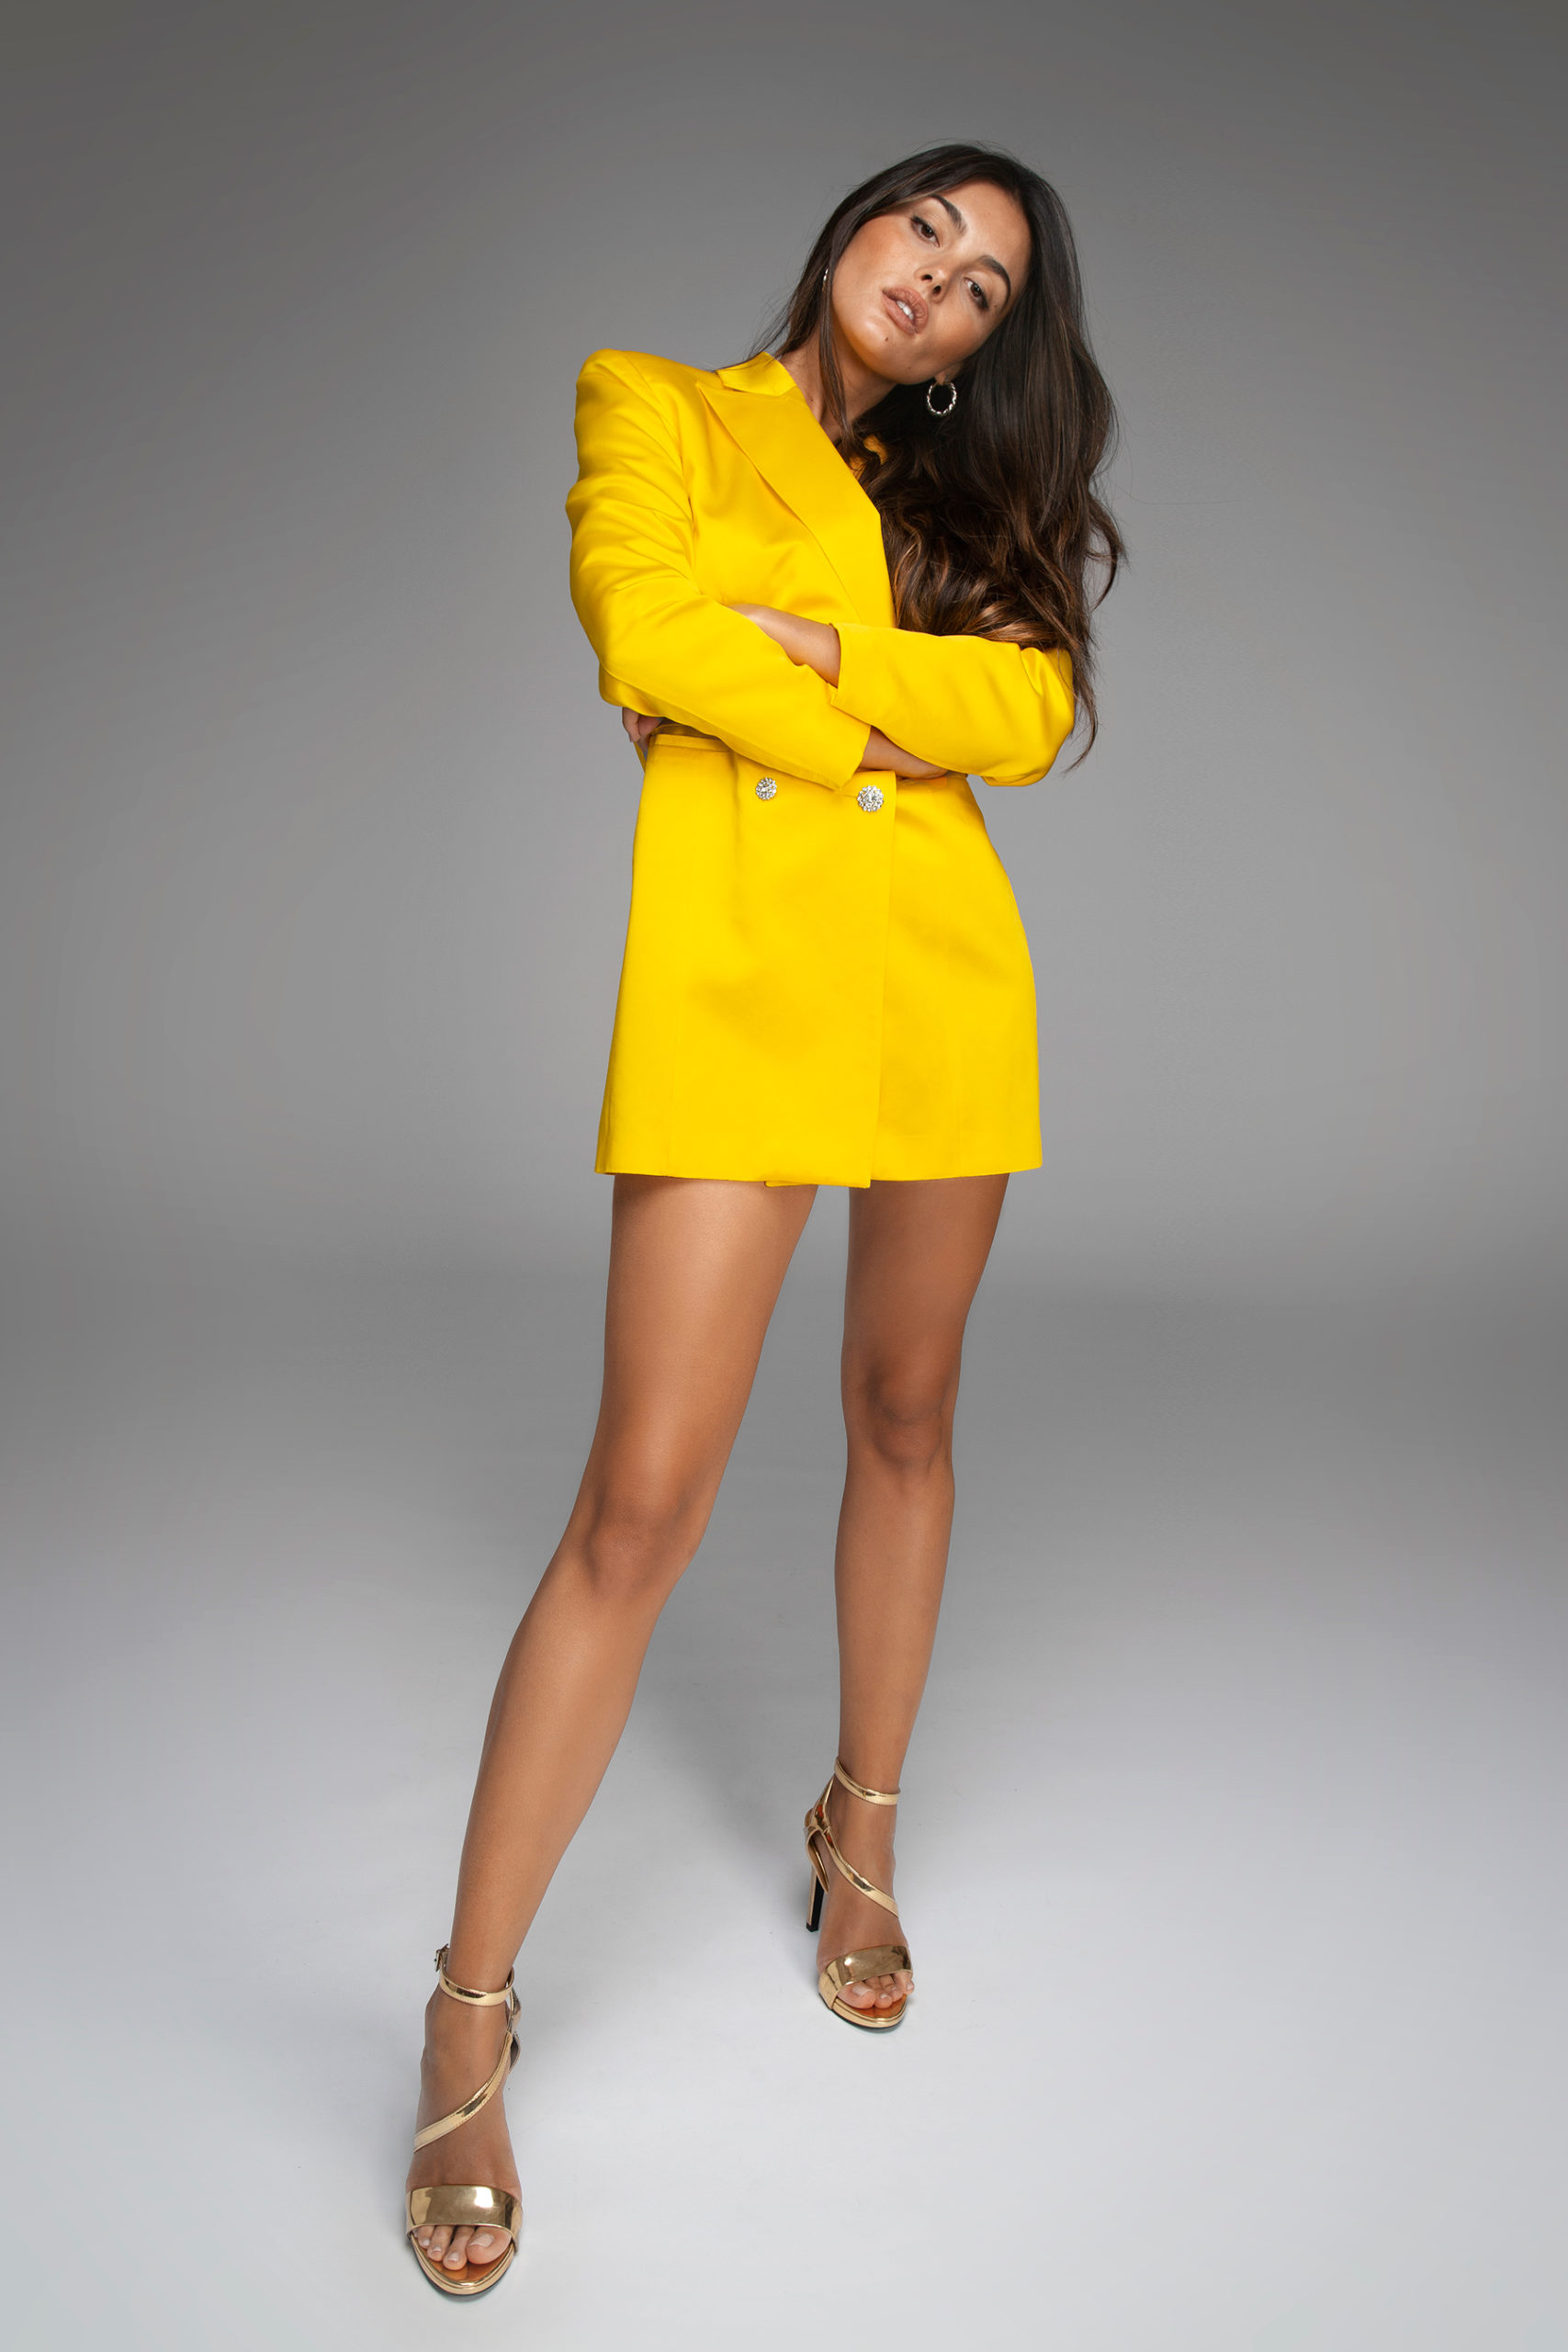 womance-tuxedo-smokin-chaqueta-seda-mini-dress-yellow-hq-5